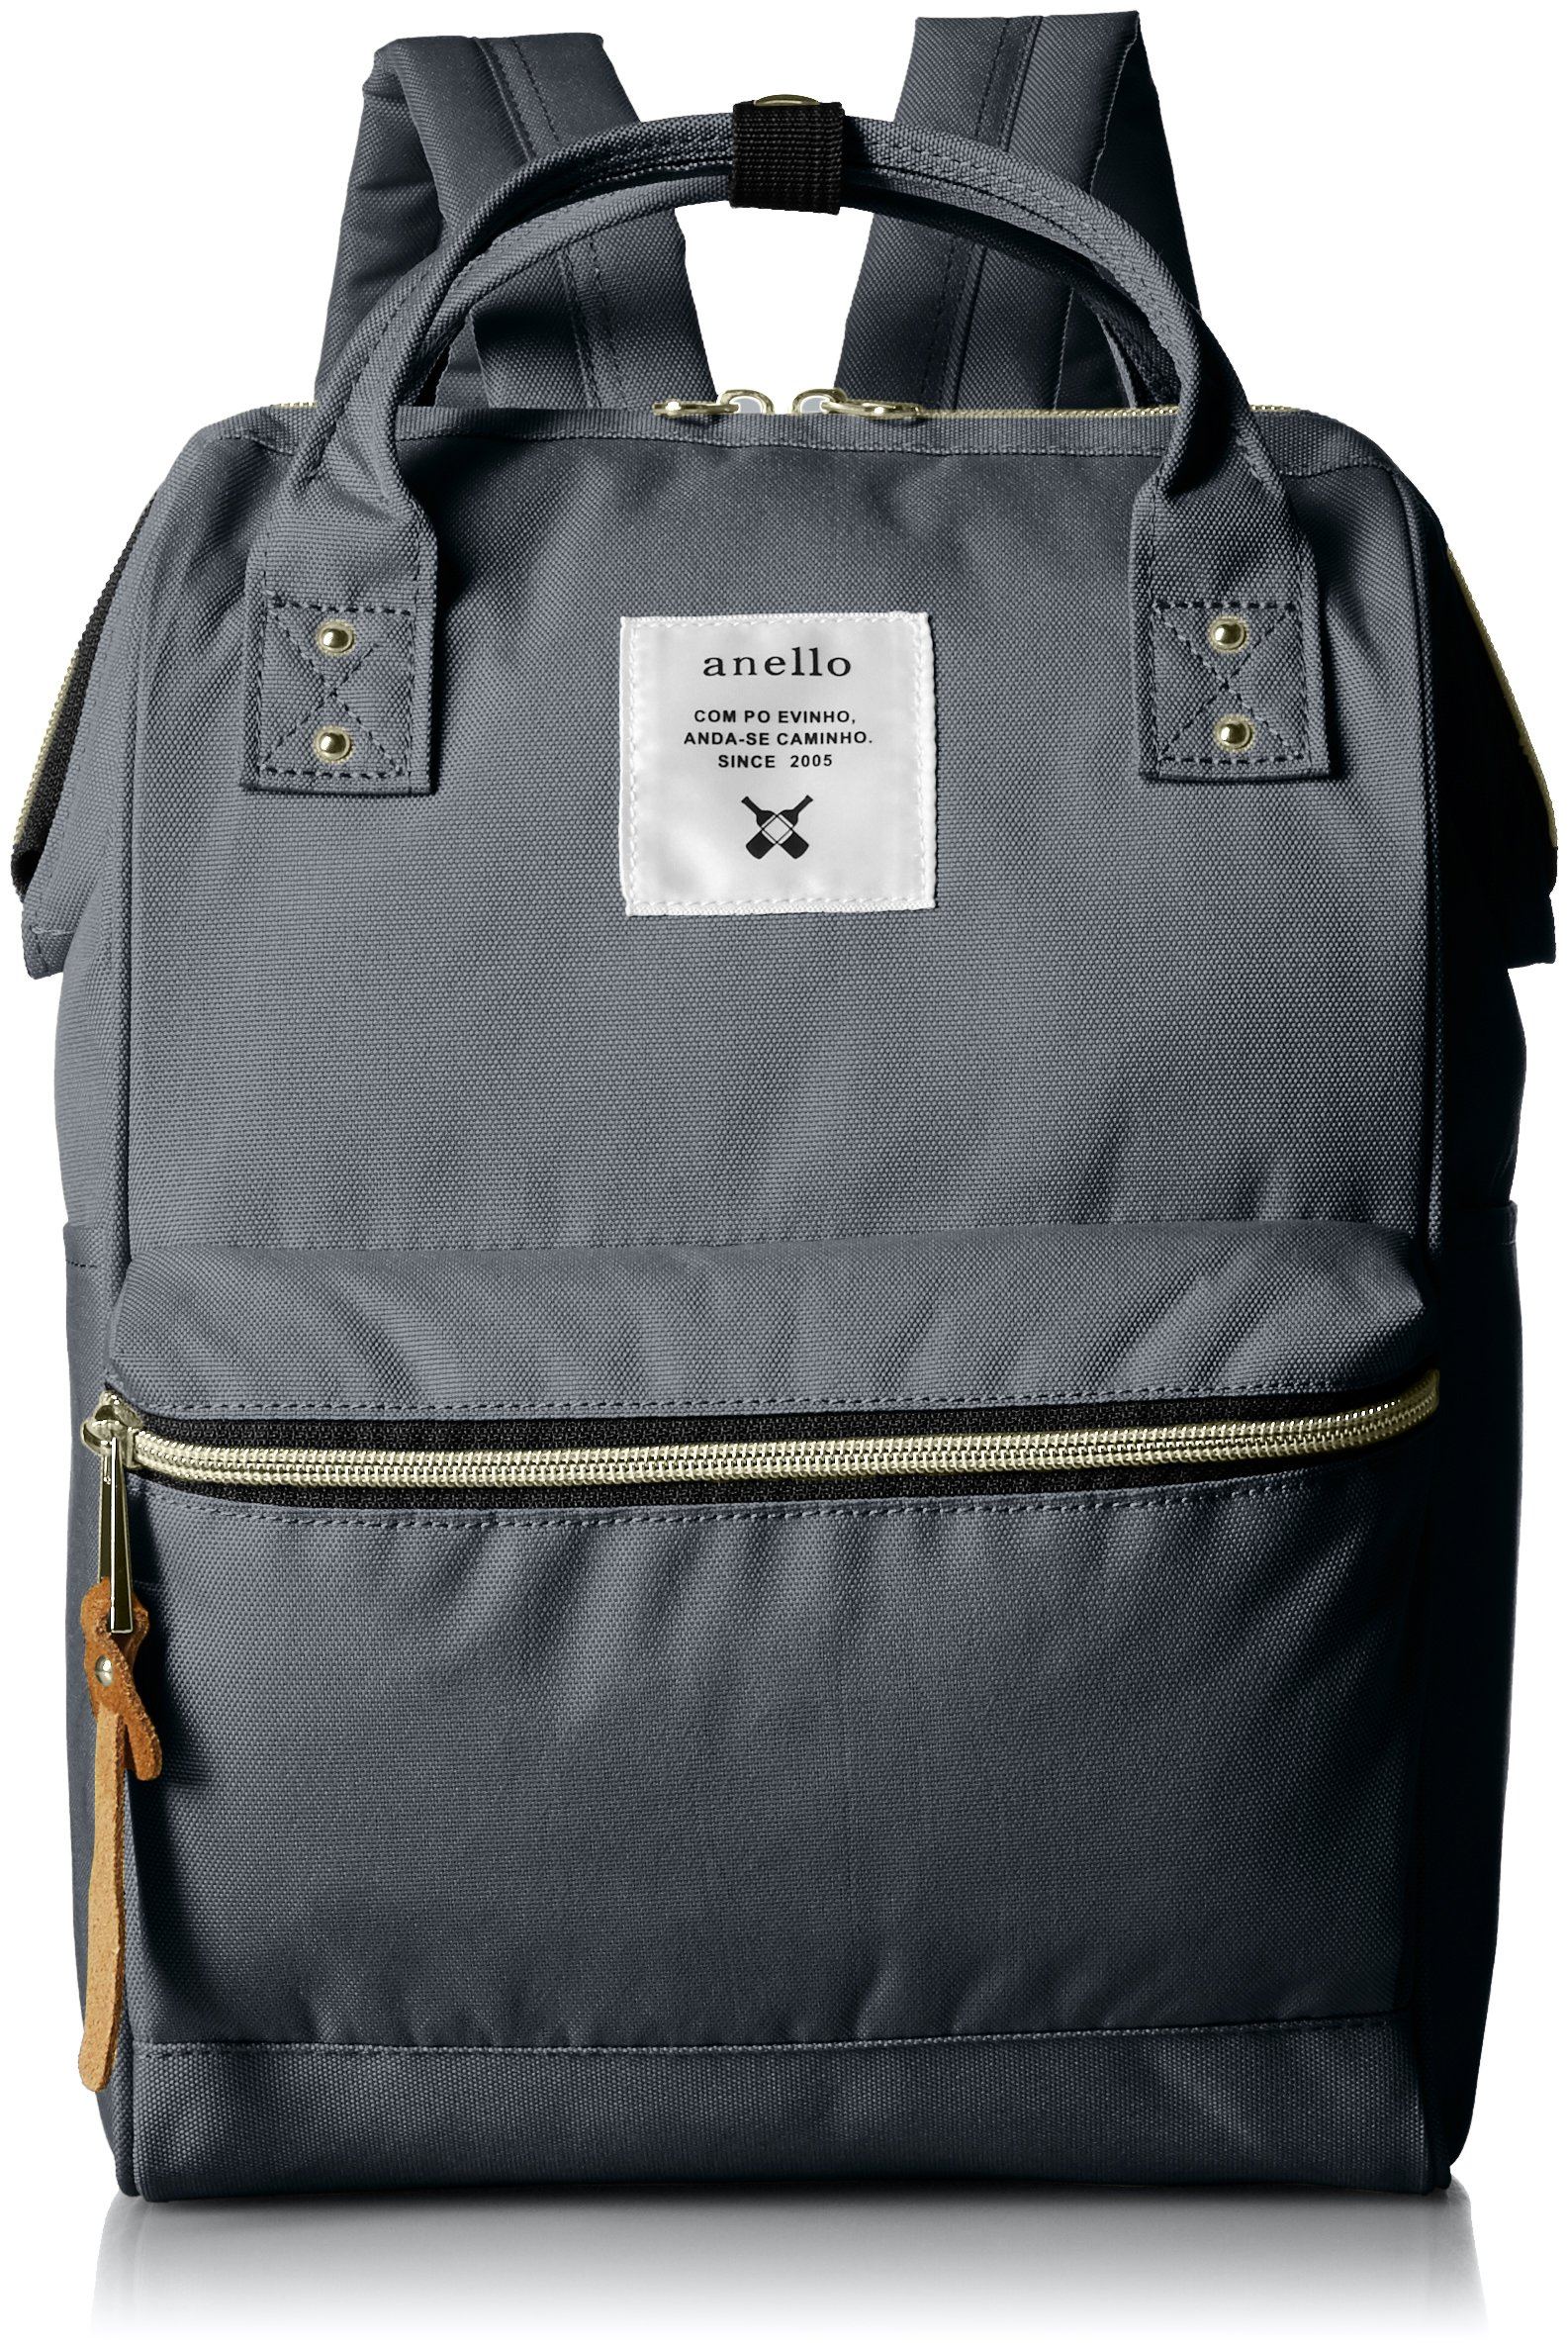 anello #AT-B0197B small backpack with side pockets (Charcoal gray)